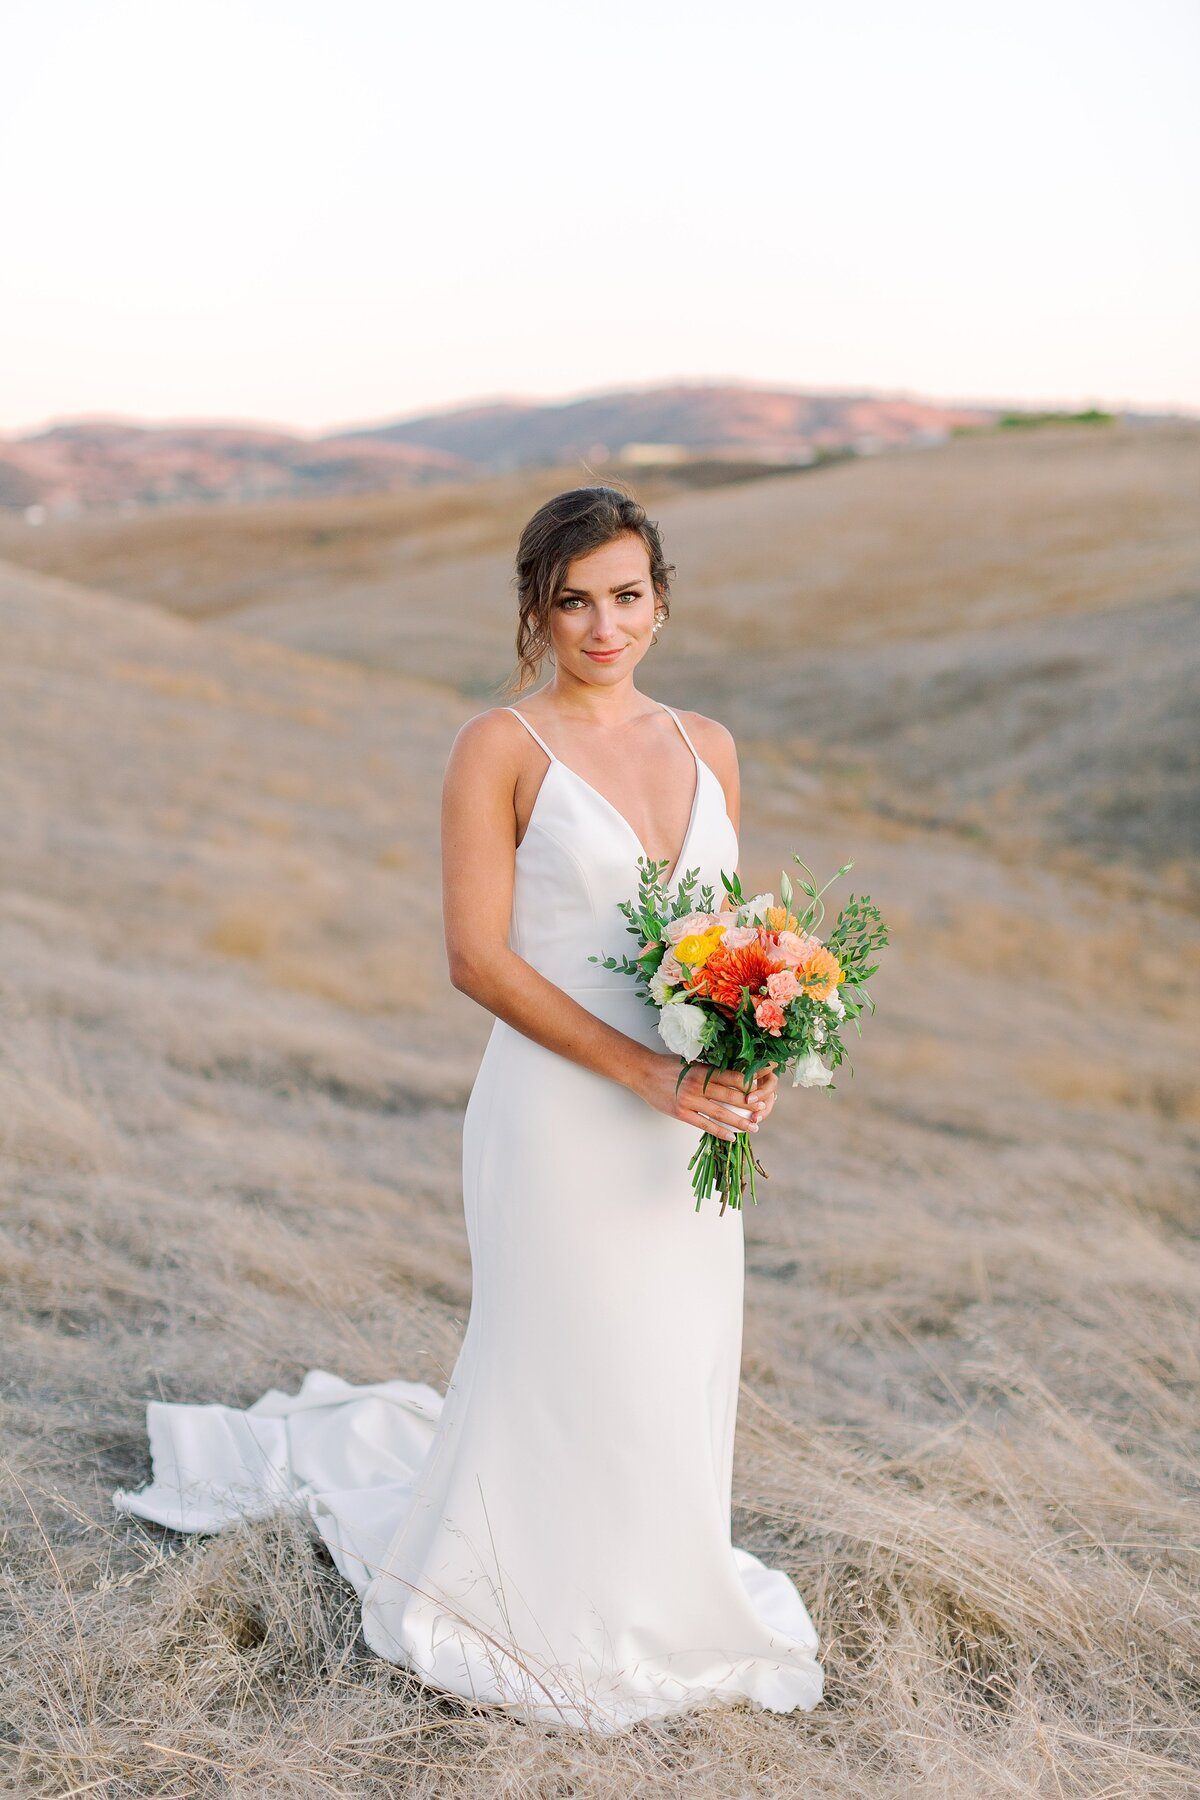 20191020 Modern Elegance Wedding Styled Shoot at Three Steves Winery Livermore_Bethany Picone Photography-228_WEB